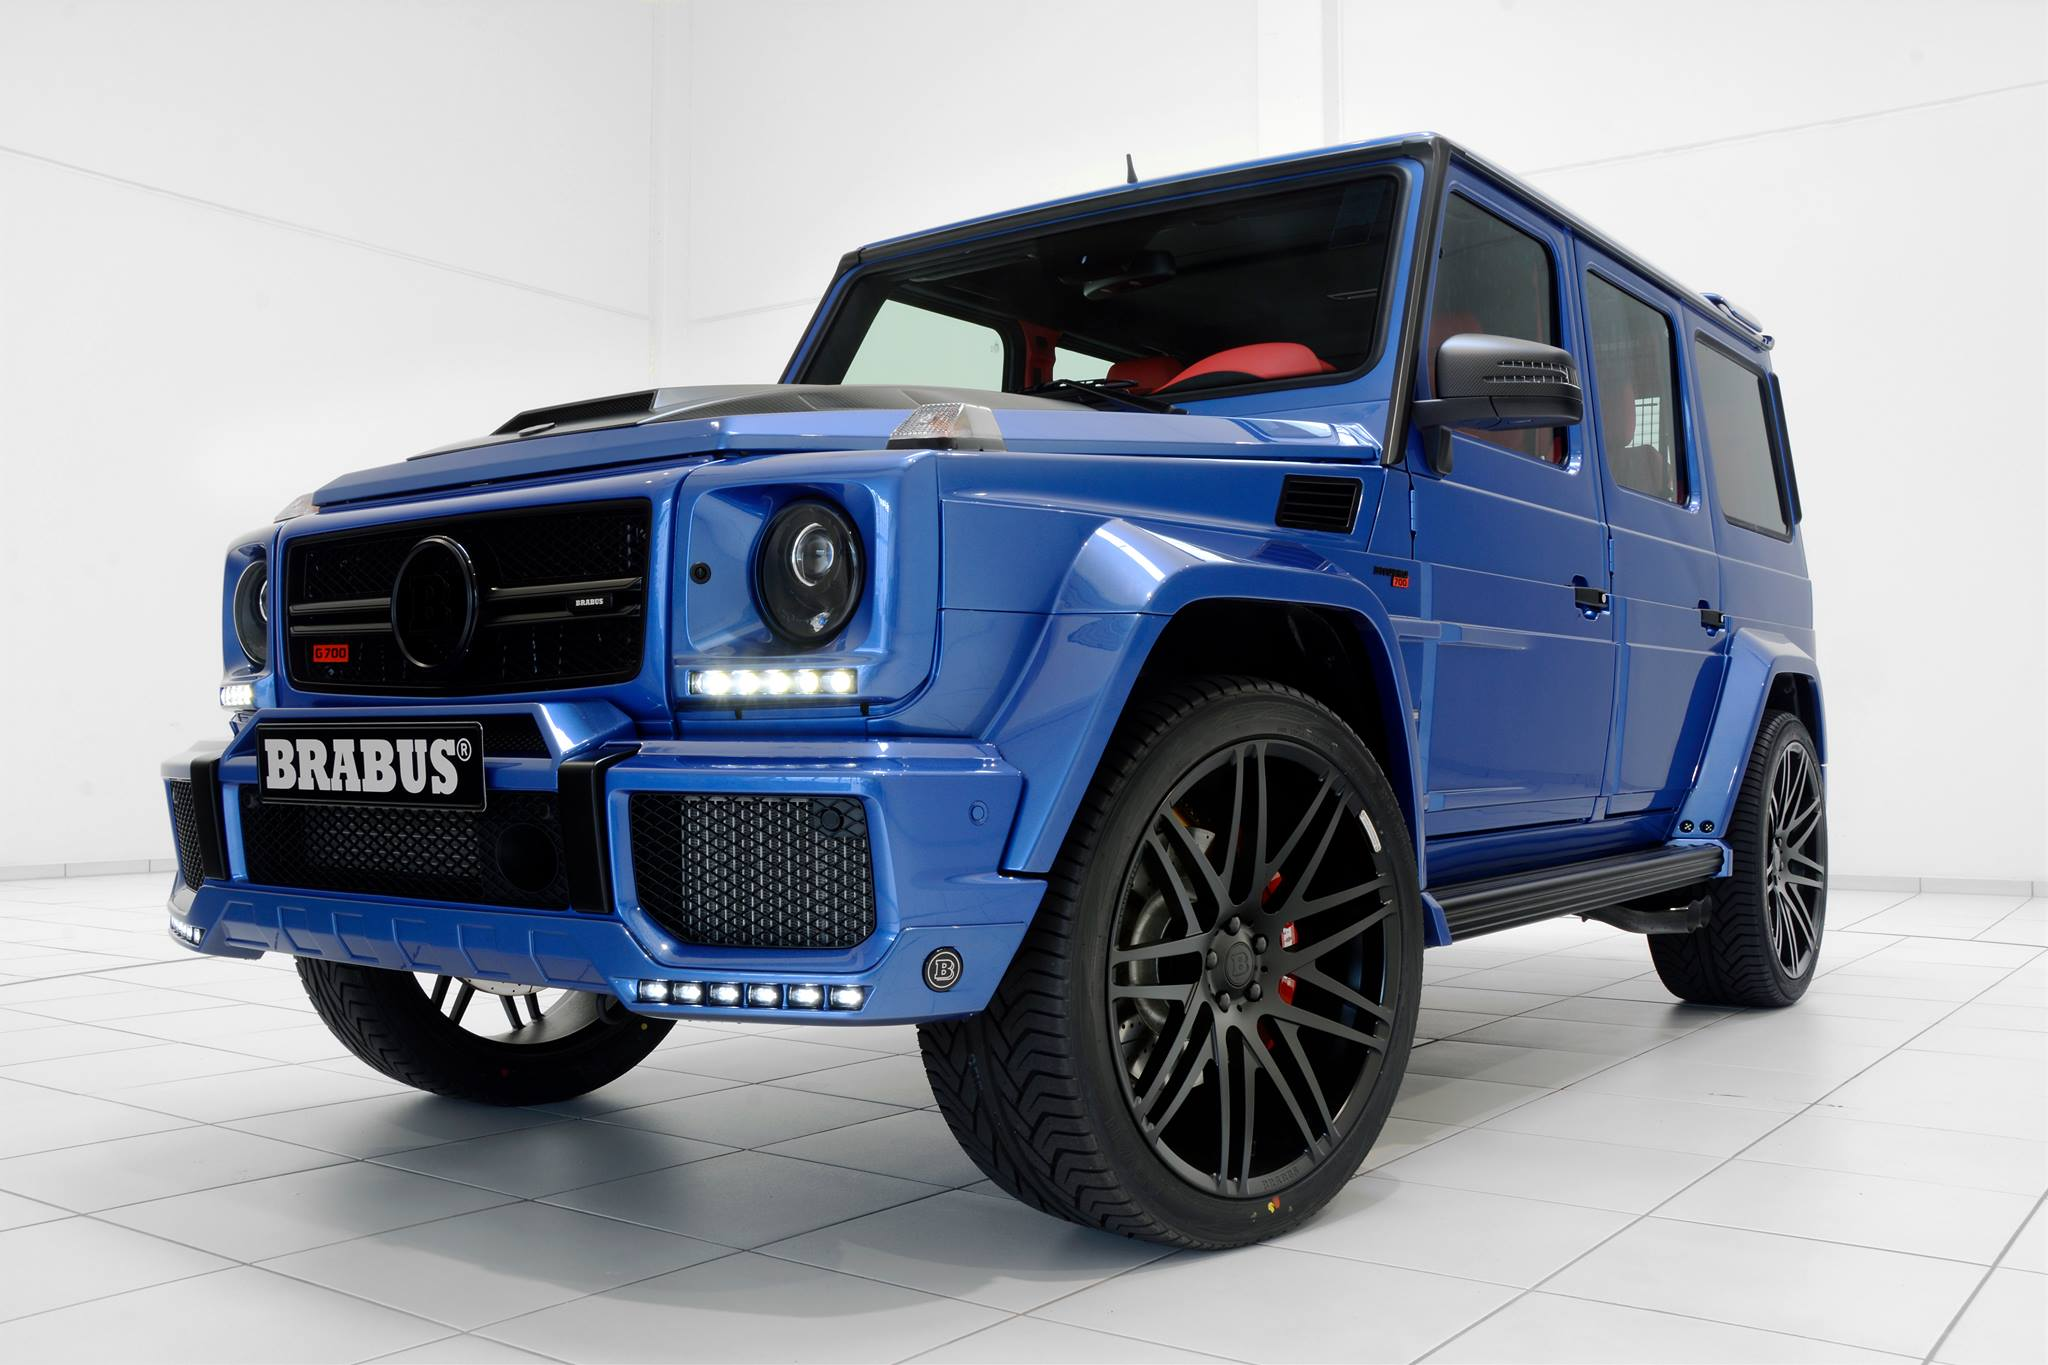 63 Power Wagon >> Brabus' 700 HP G63 AMG Combines Blue Paint and Red Leather - autoevolution